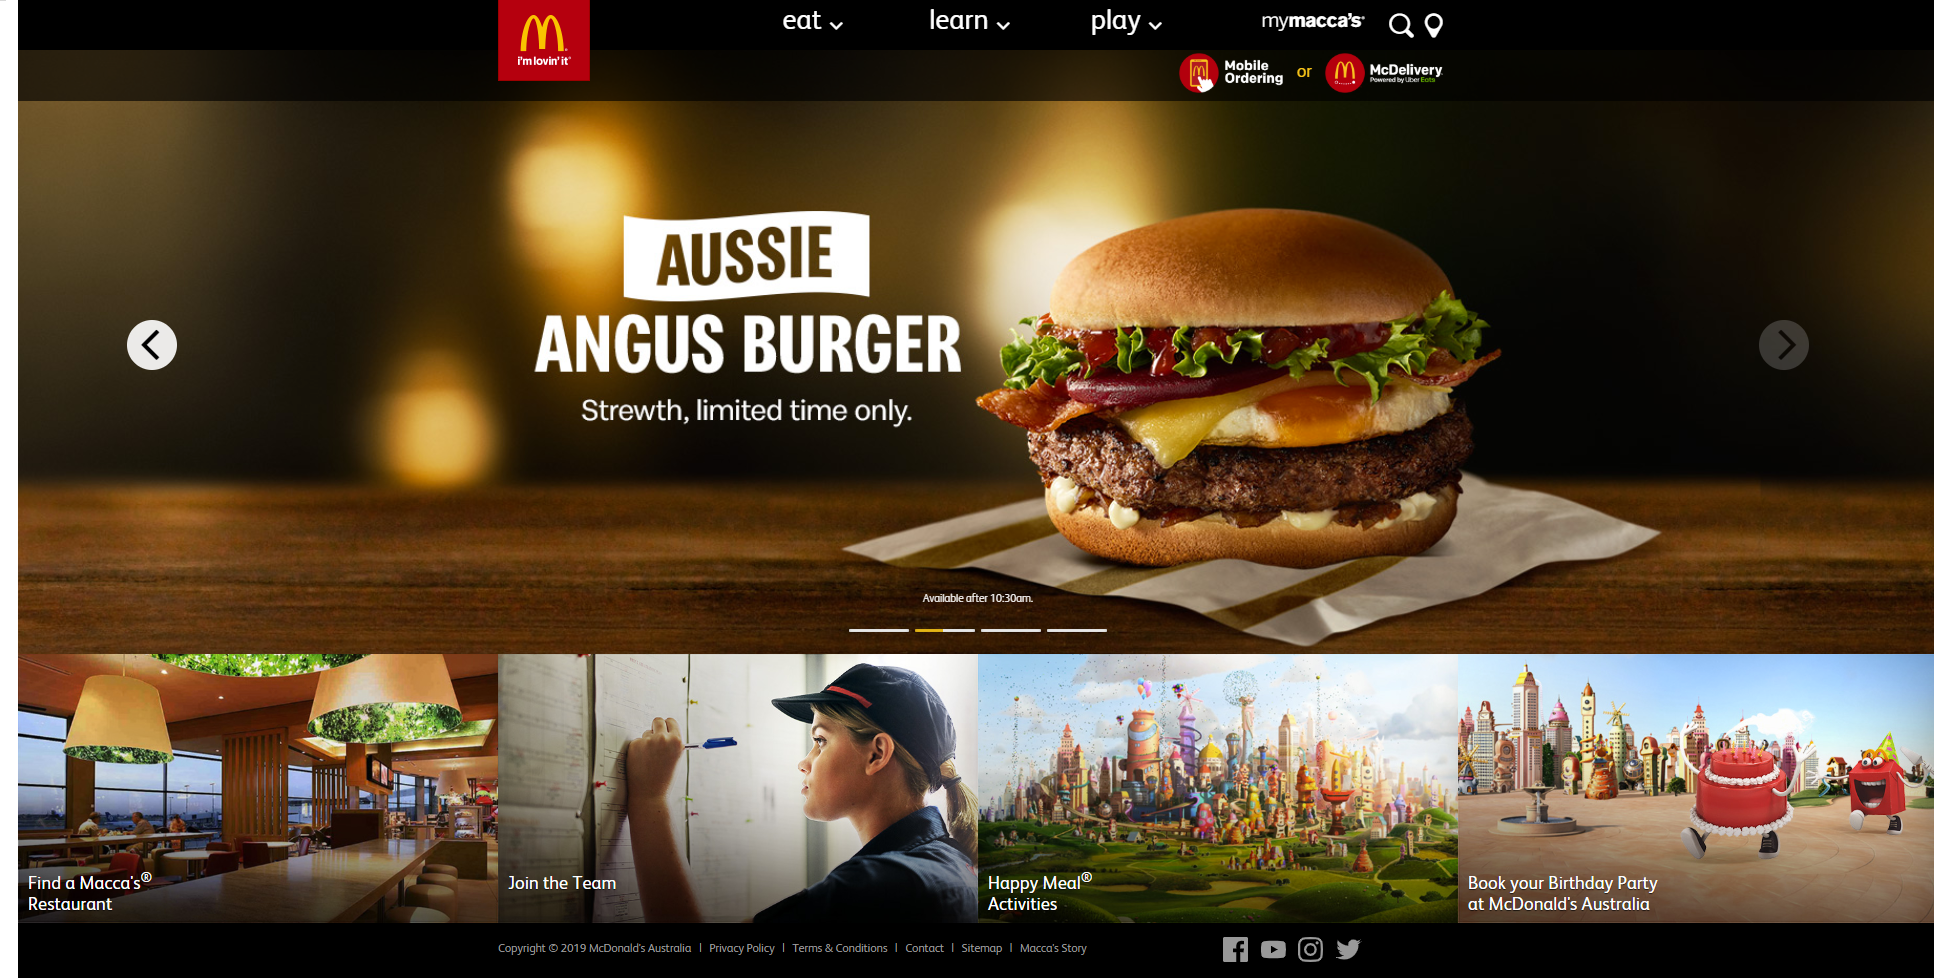 Mcdonalds australia website design